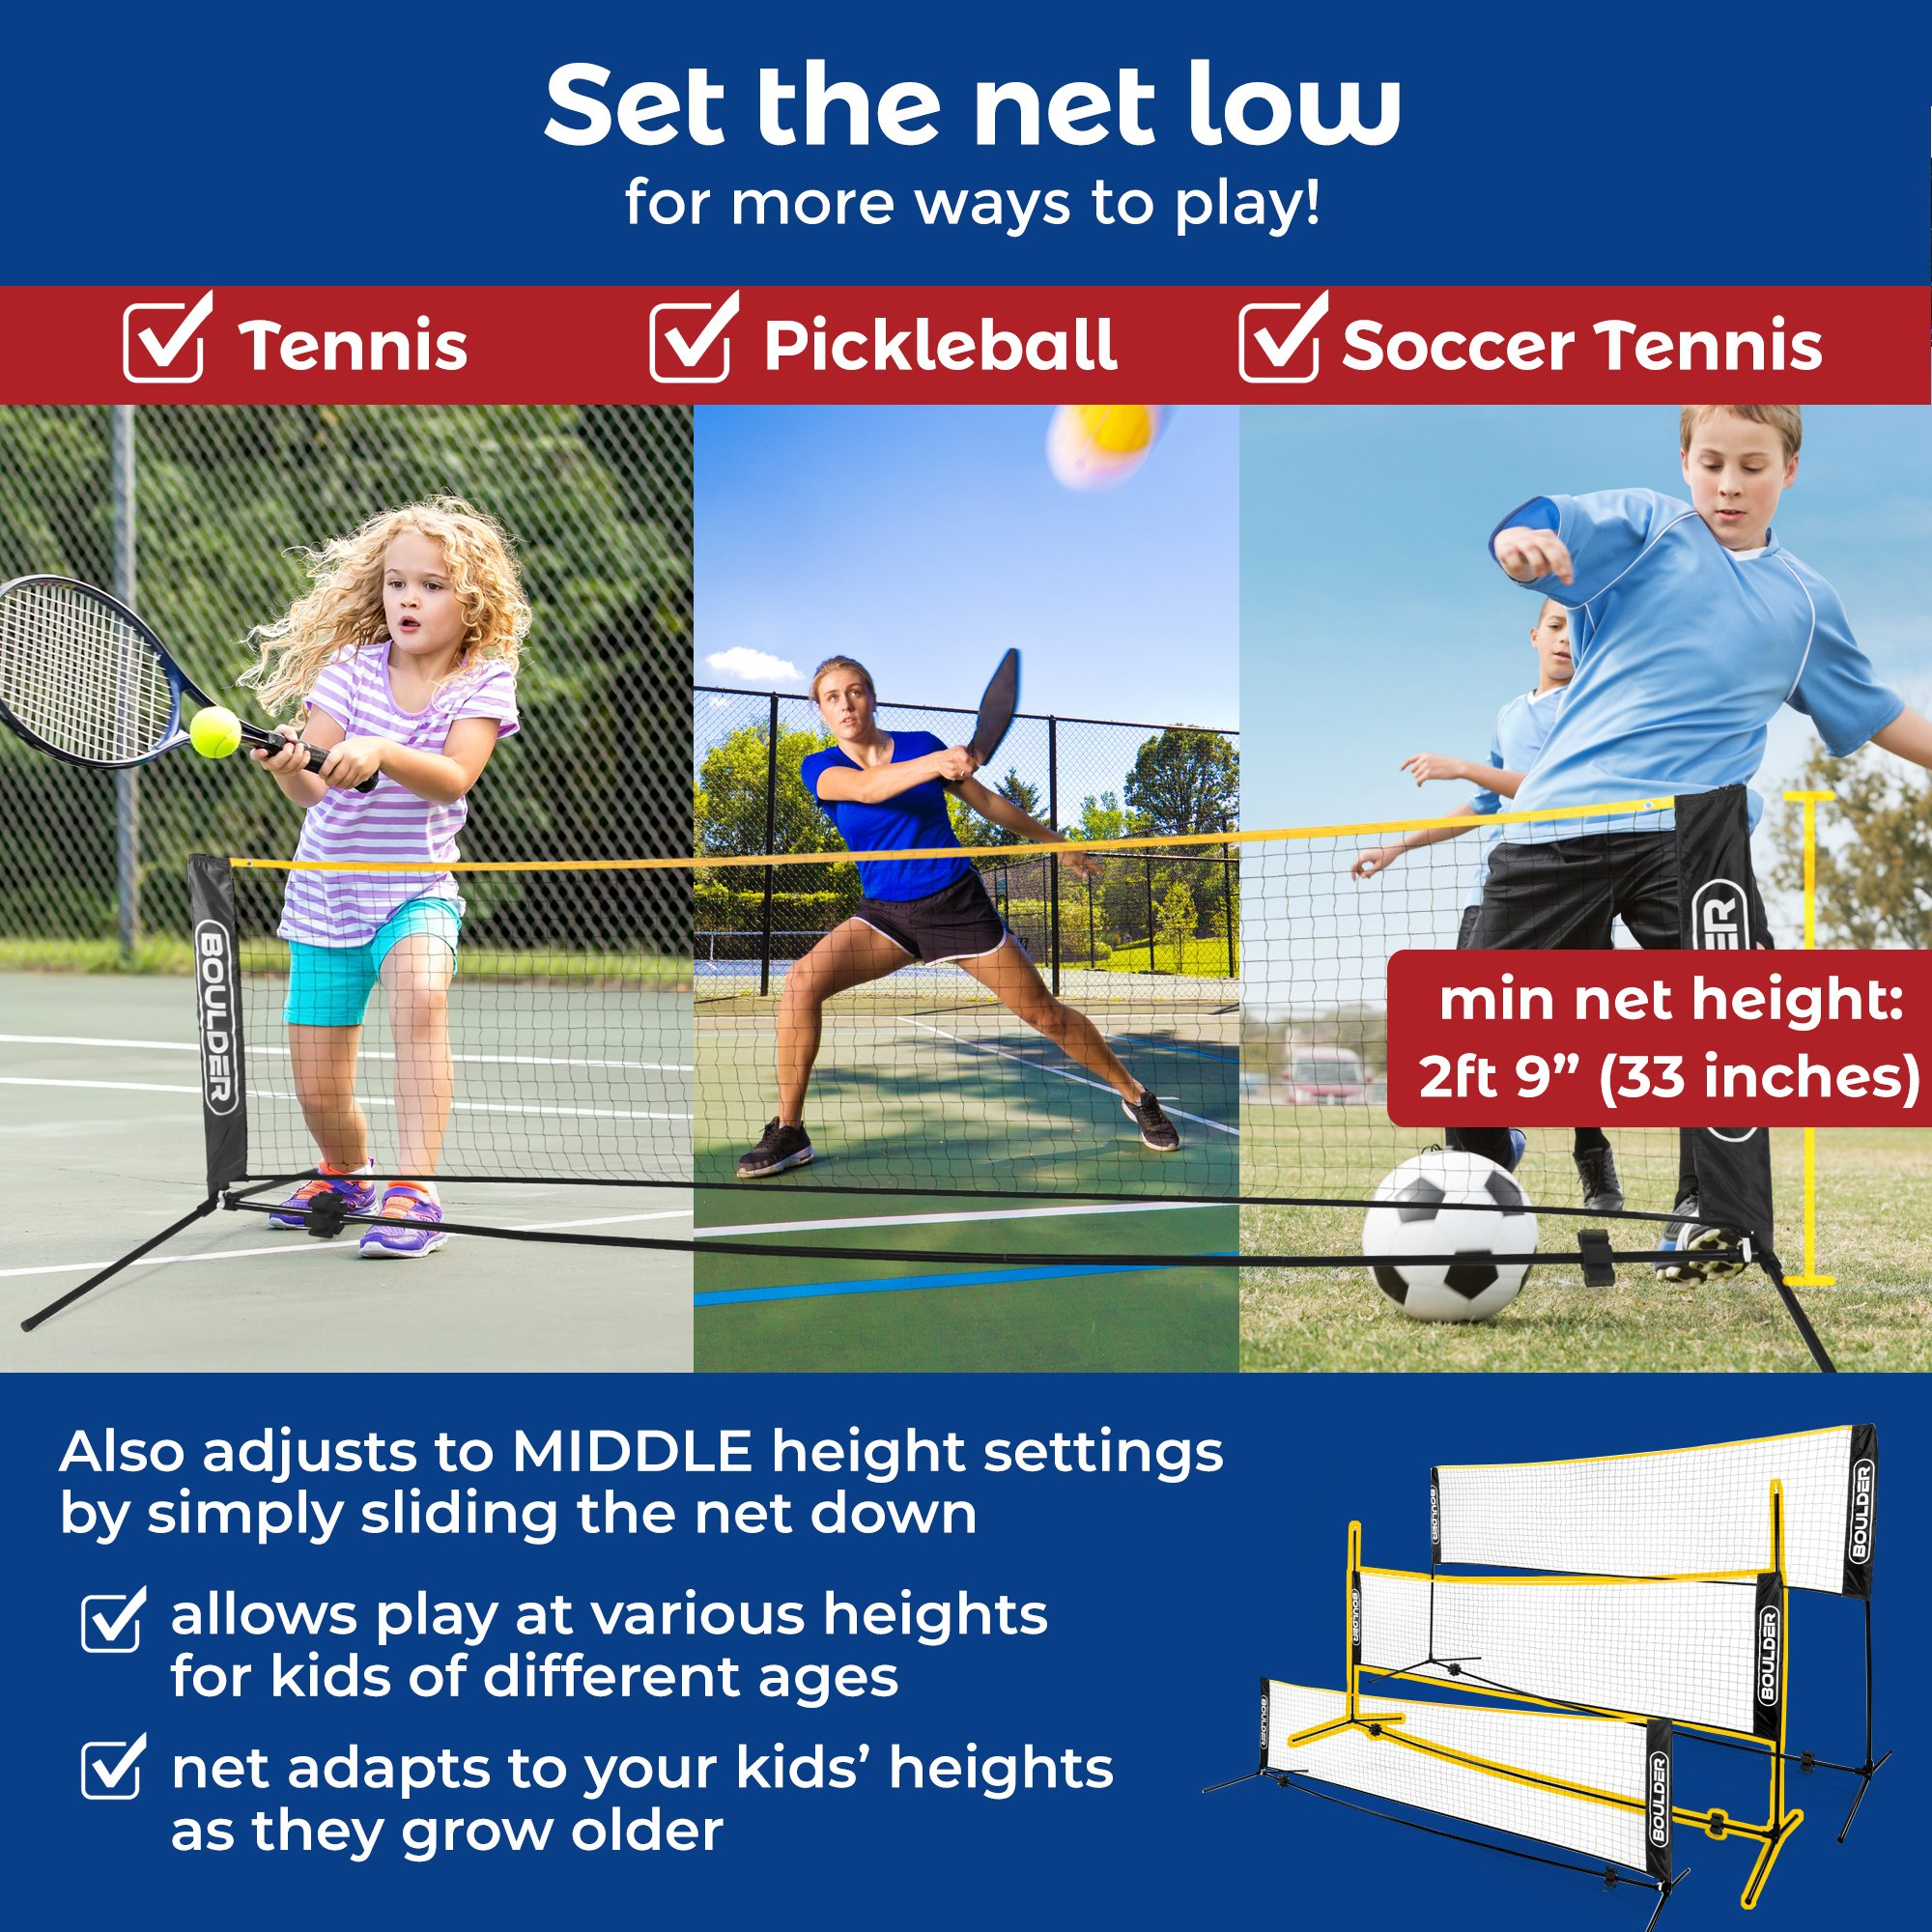 Boulder Portable Badminton Net Set - 10-FT Mini Net for Tennis, Soccer Tennis, Pickleball, Kids Volleyball - Easy Setup Nylon Sports Net with Poles - for Indoor or Outdoor Court, Beach, Driveway by Boulder (Image #3)